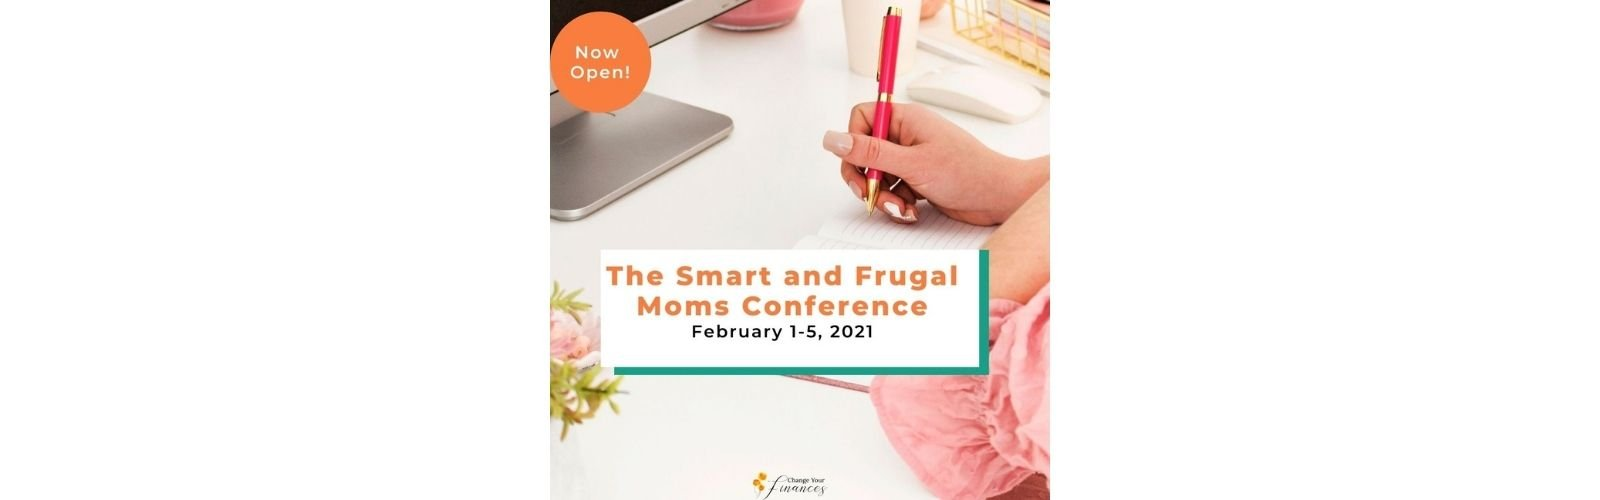 Smart and Frugal Moms Conference